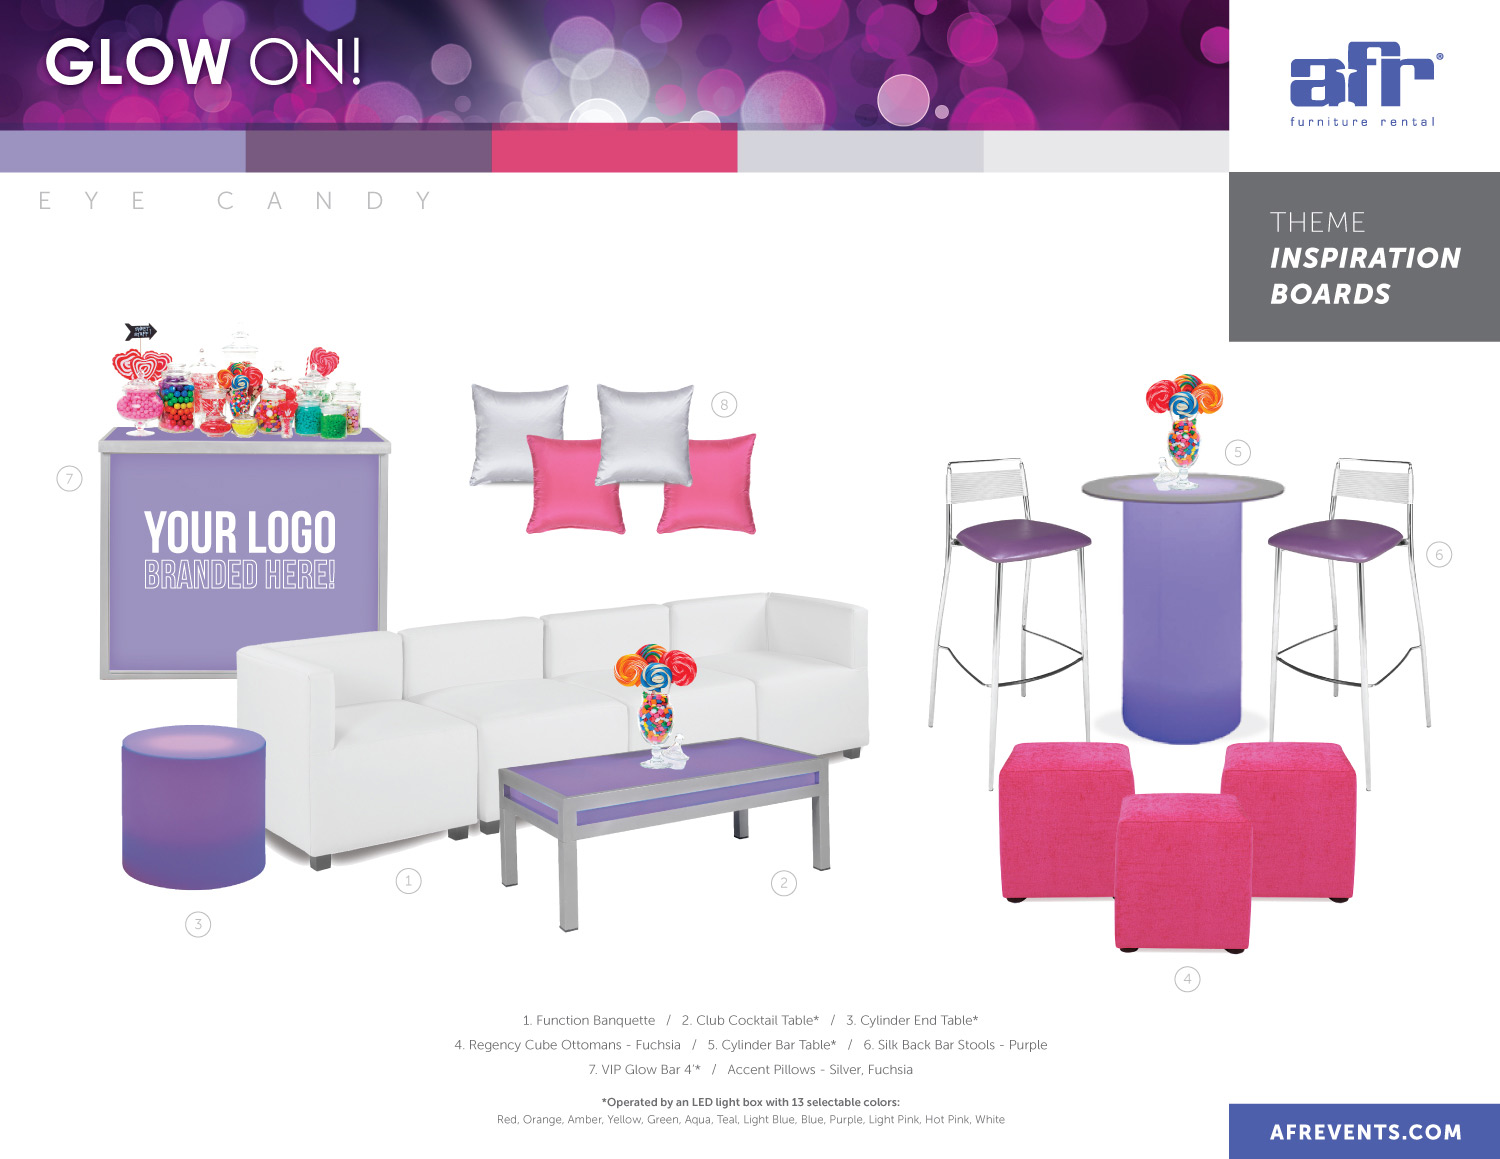 Furnishings special event furnishings · request a